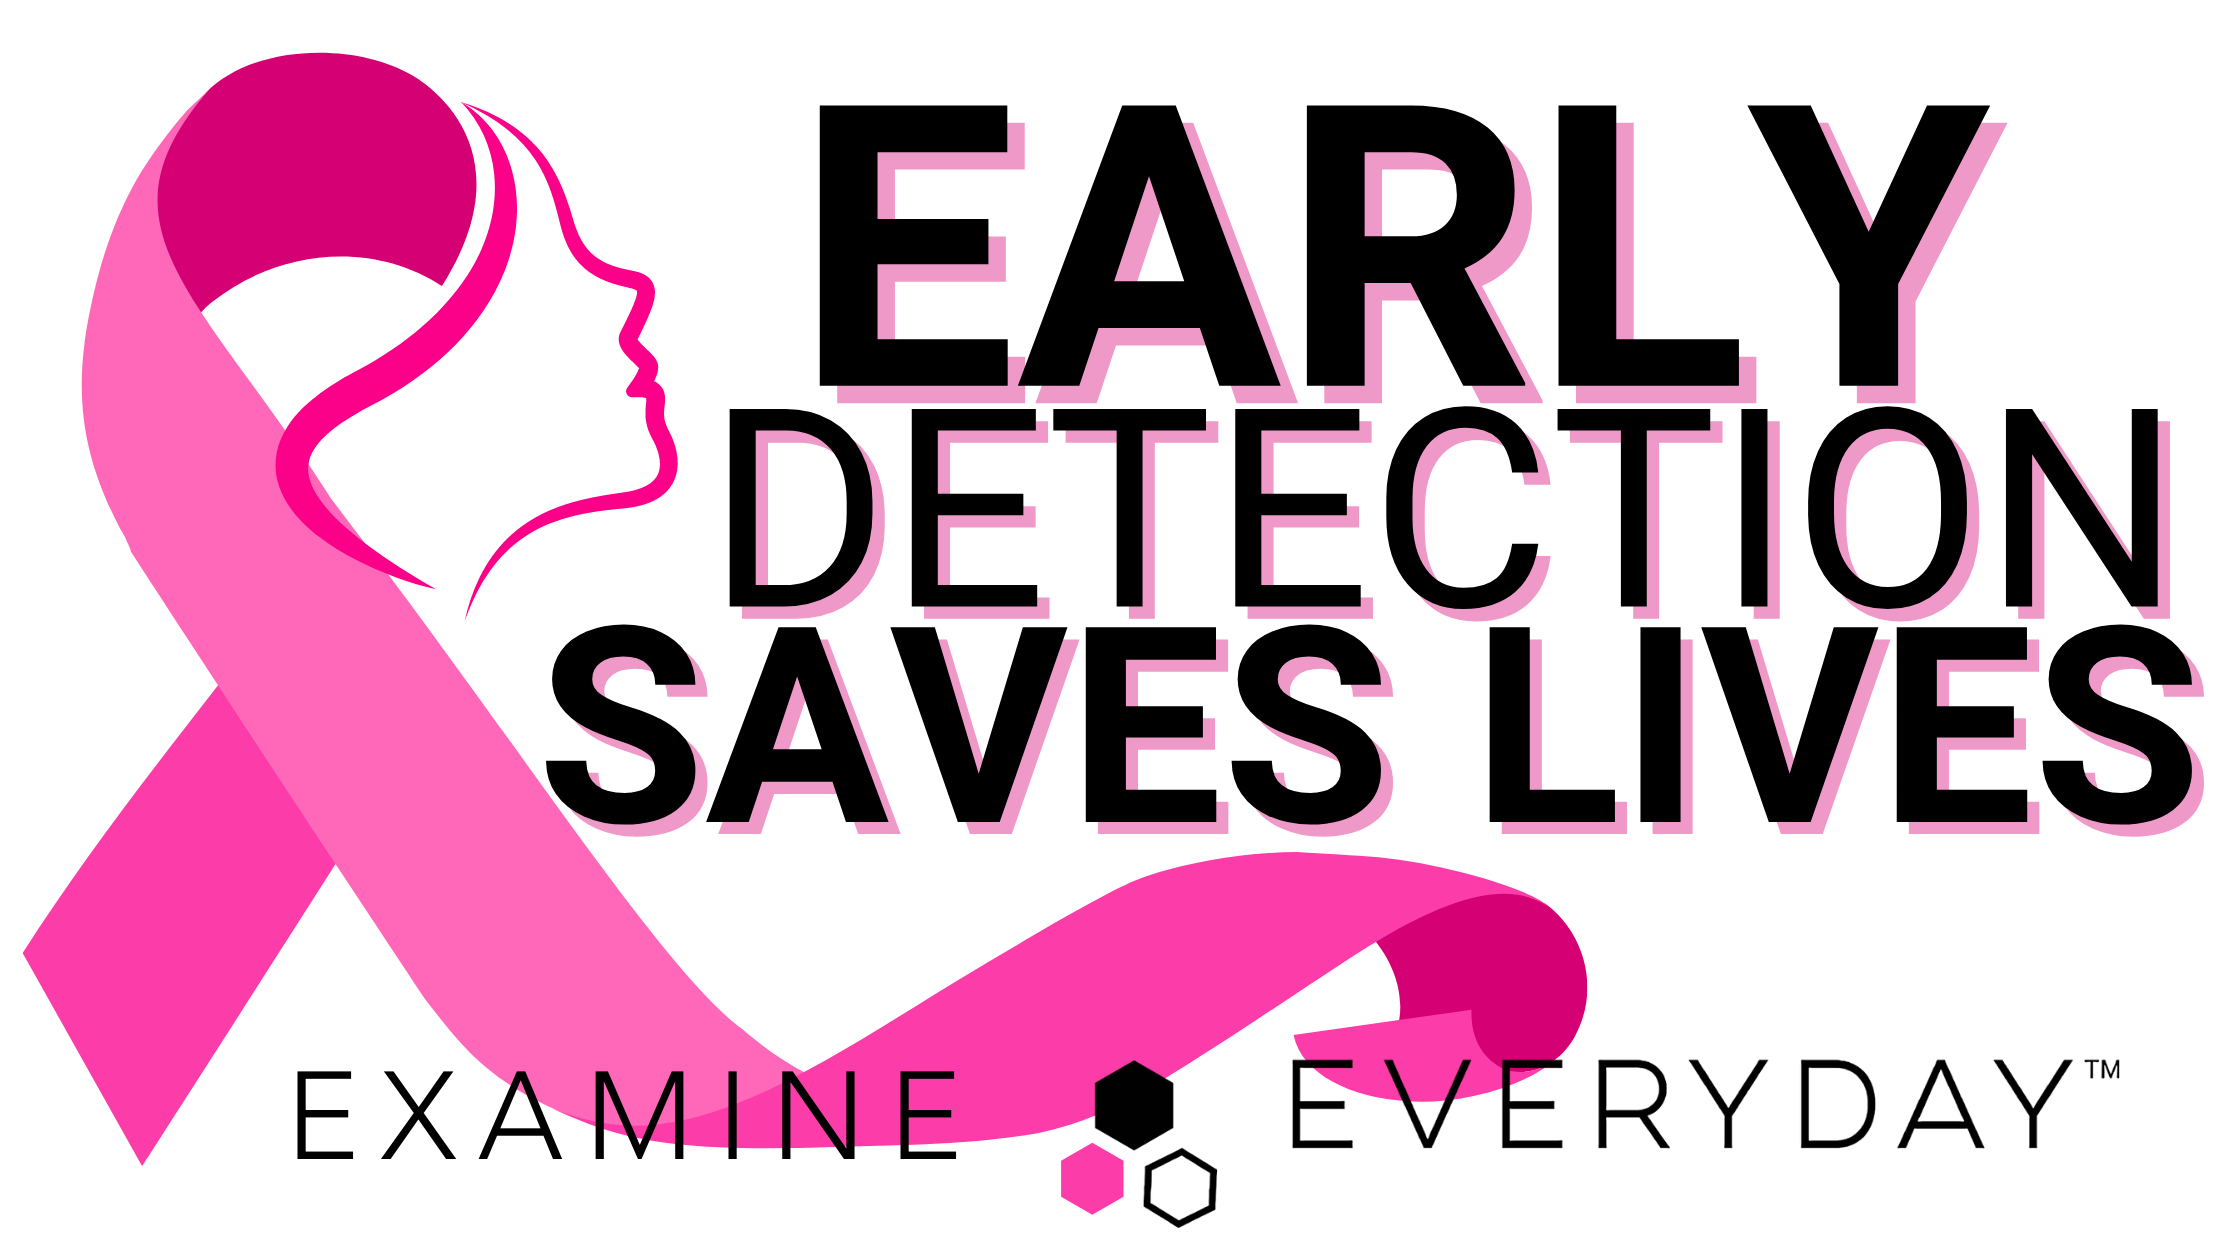 EARLY DETECTION IS KEY Blog Banner 1